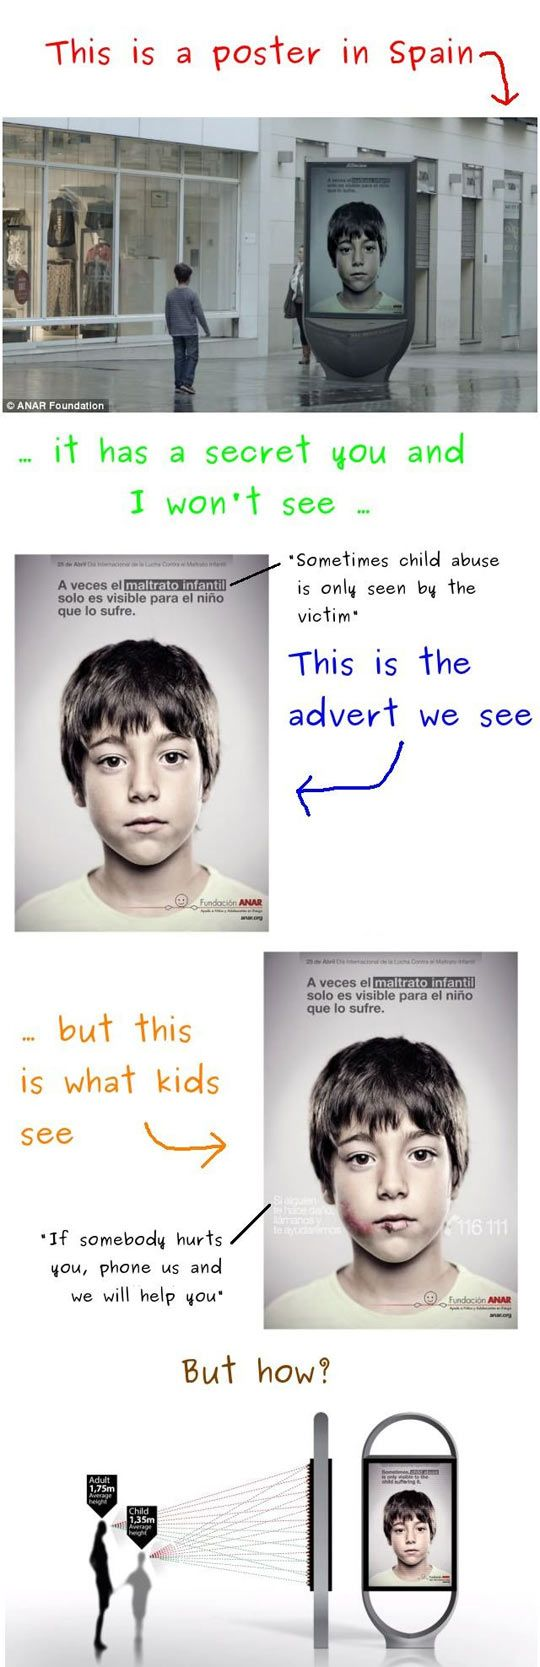 I think this is the most wonderful ad ever. It's brilliantly made and really very true. Really proving that only the victim can see... I love this. Made me teary with excitement/awe/sadness.